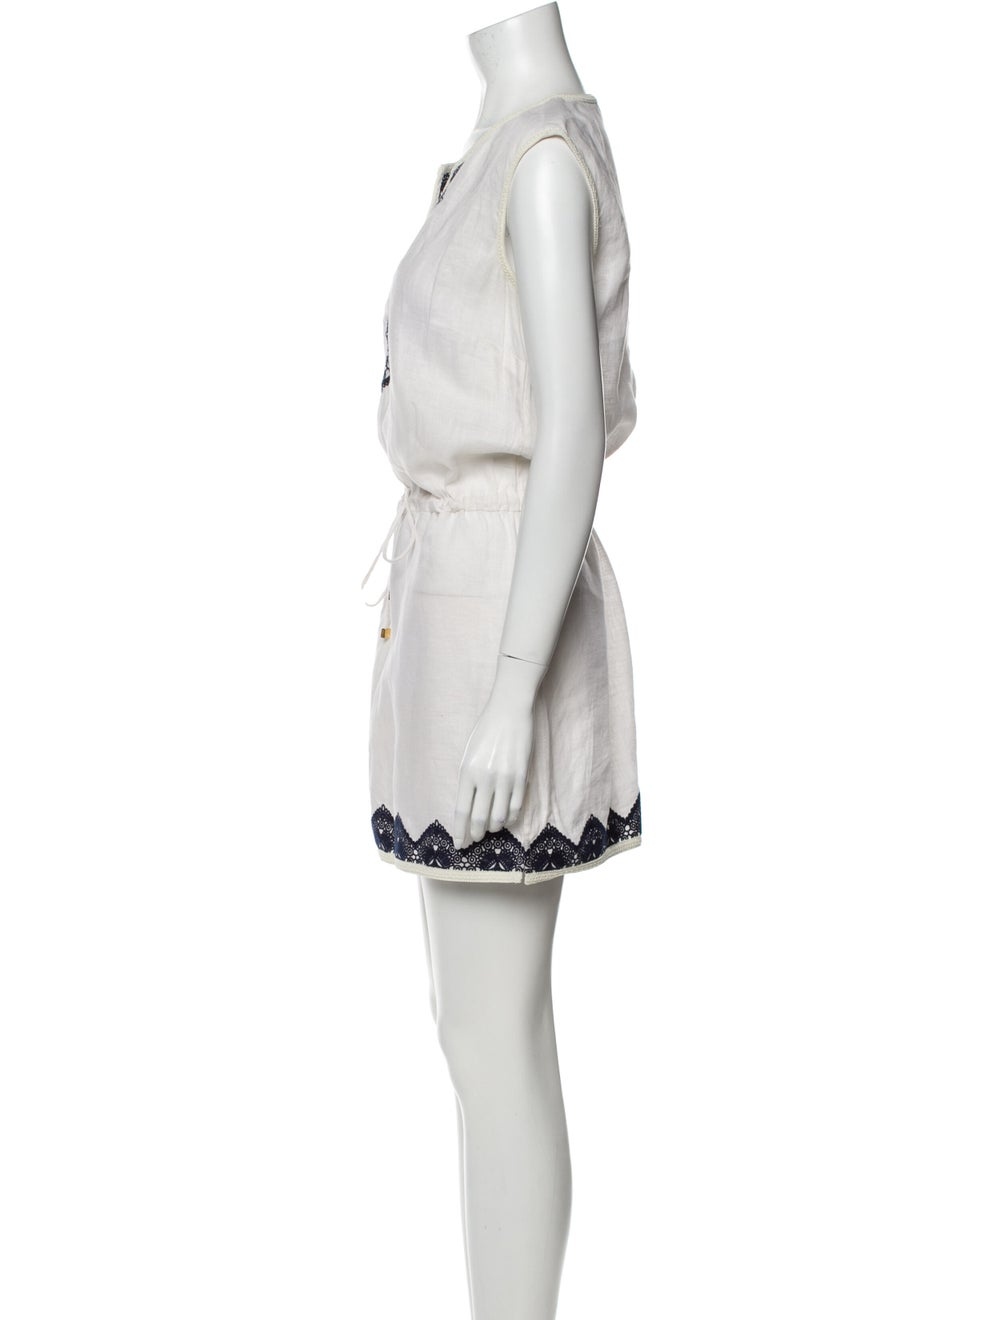 Tory Burch Linen Mini Dress White - image 2